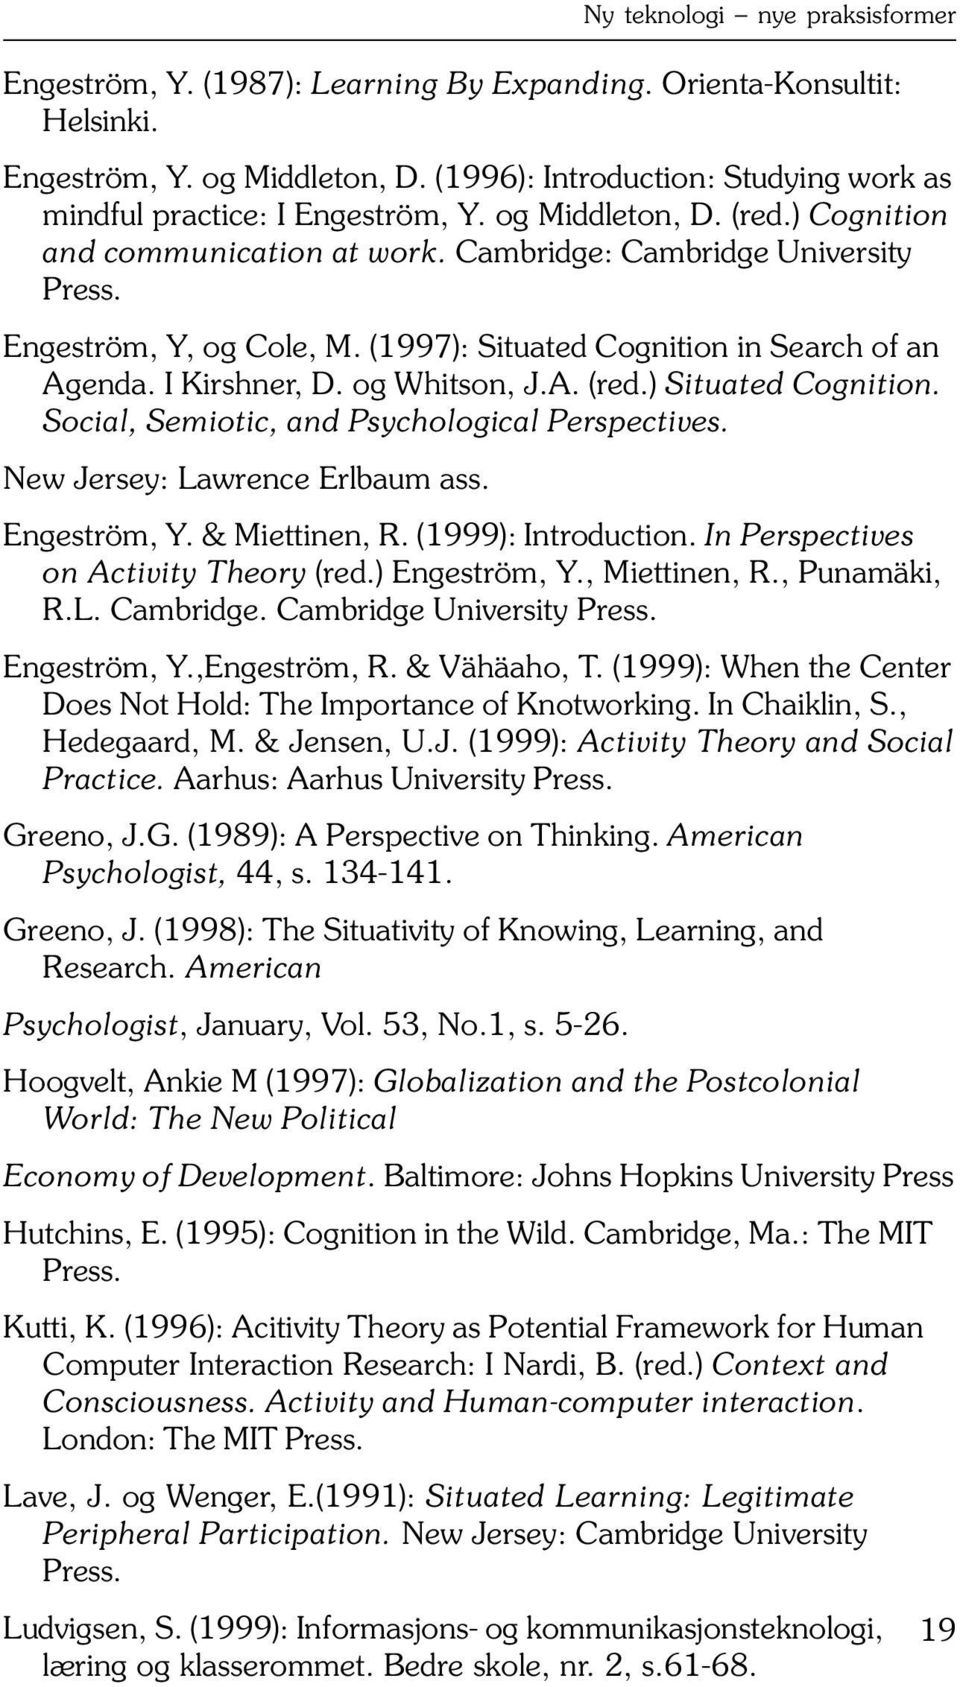 ) Situated Cognition. Social, Semiotic, and Psychological Perspectives. New Jersey: Lawrence Erlbaum ass. Engeström, Y. & Miettinen, R. (1999): Introduction. In Perspectives on Activity Theory (red.